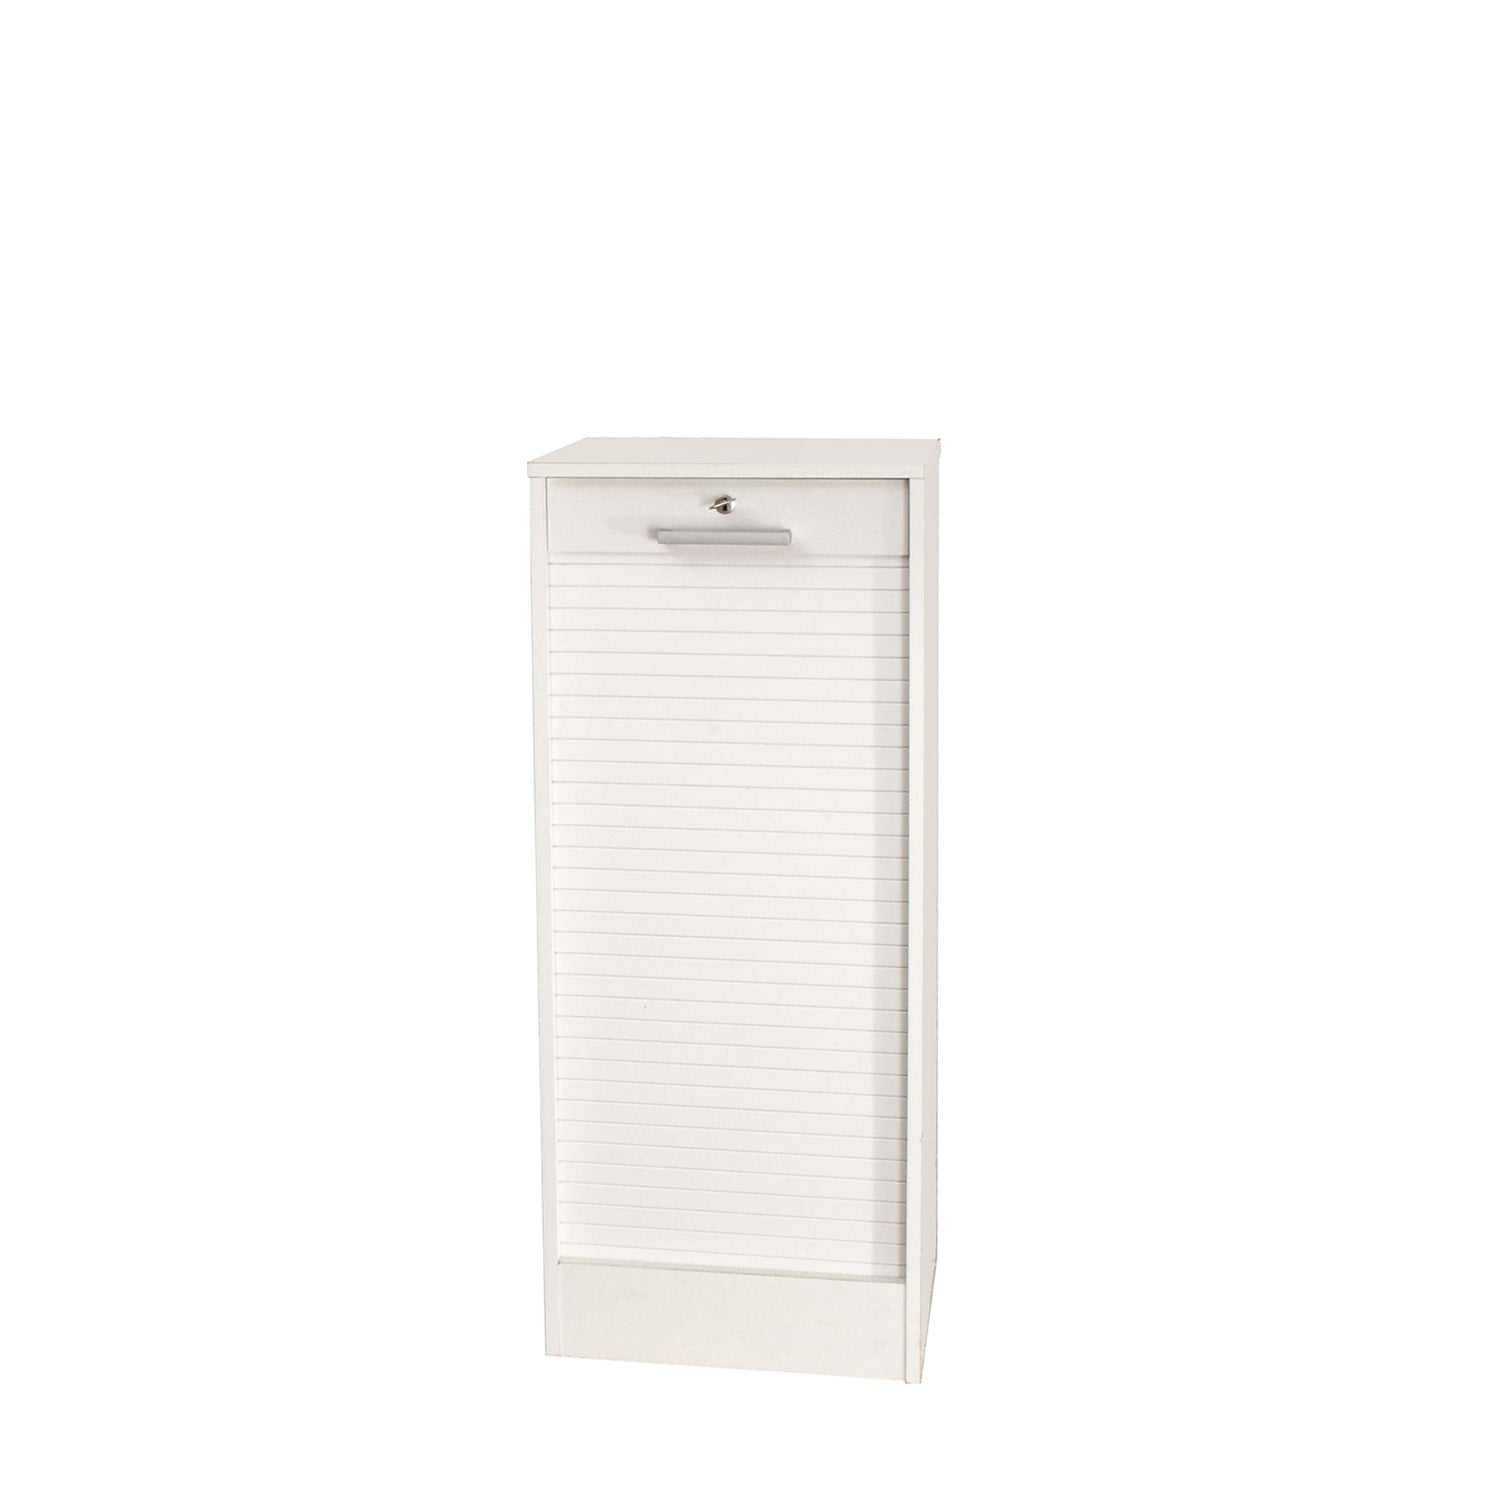 Avrel White Vertical File Cabinet